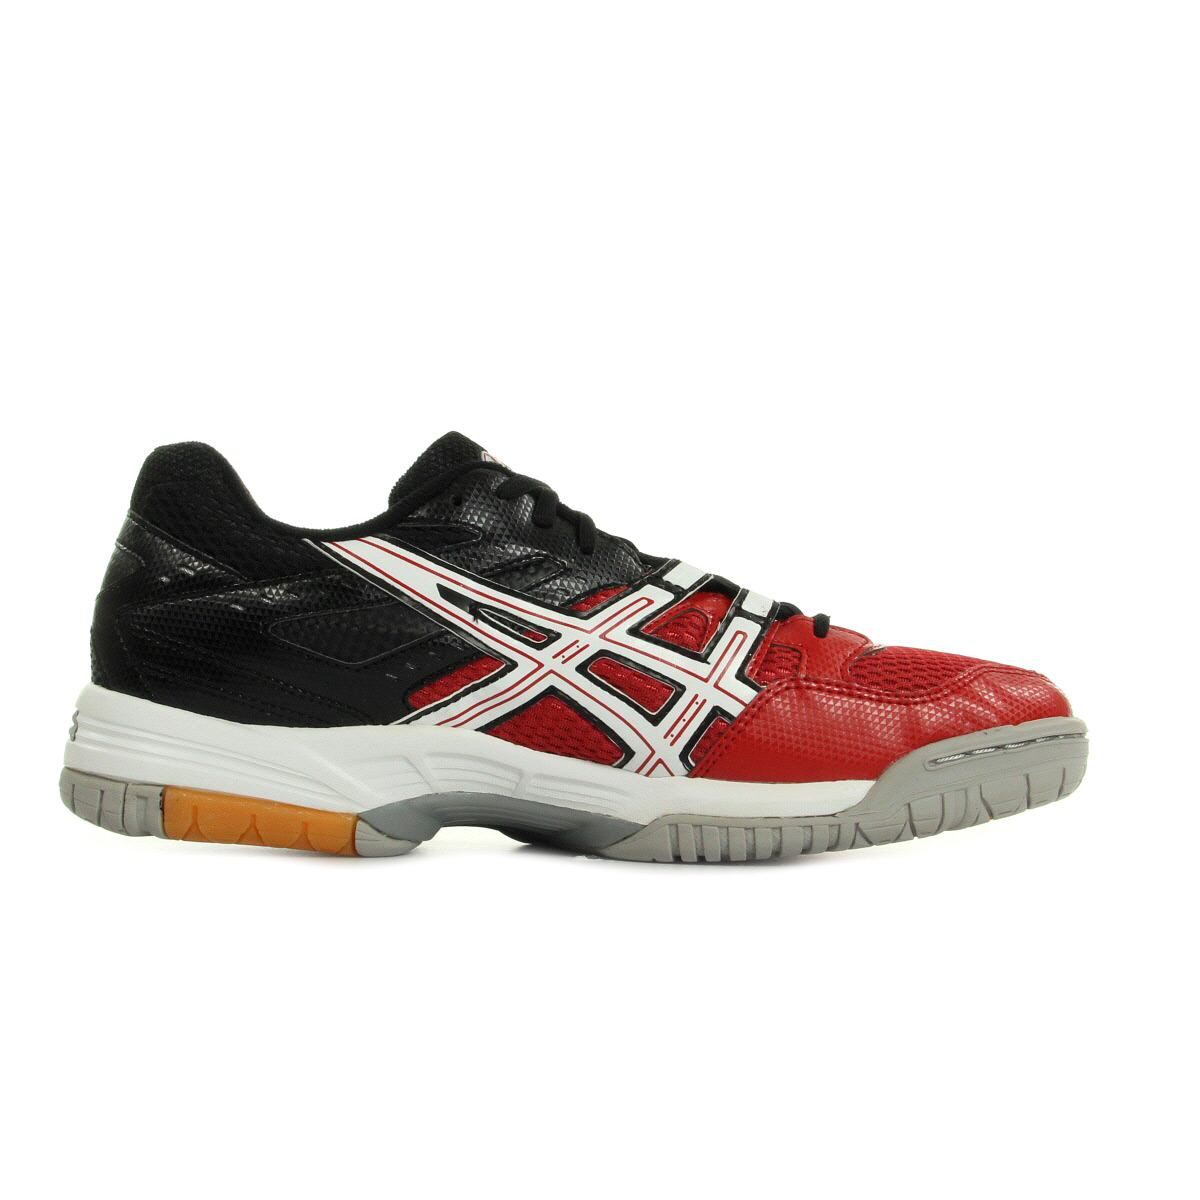 chaussures asics homme gel rocket 6 handball taille noir noire textile lacets. Black Bedroom Furniture Sets. Home Design Ideas